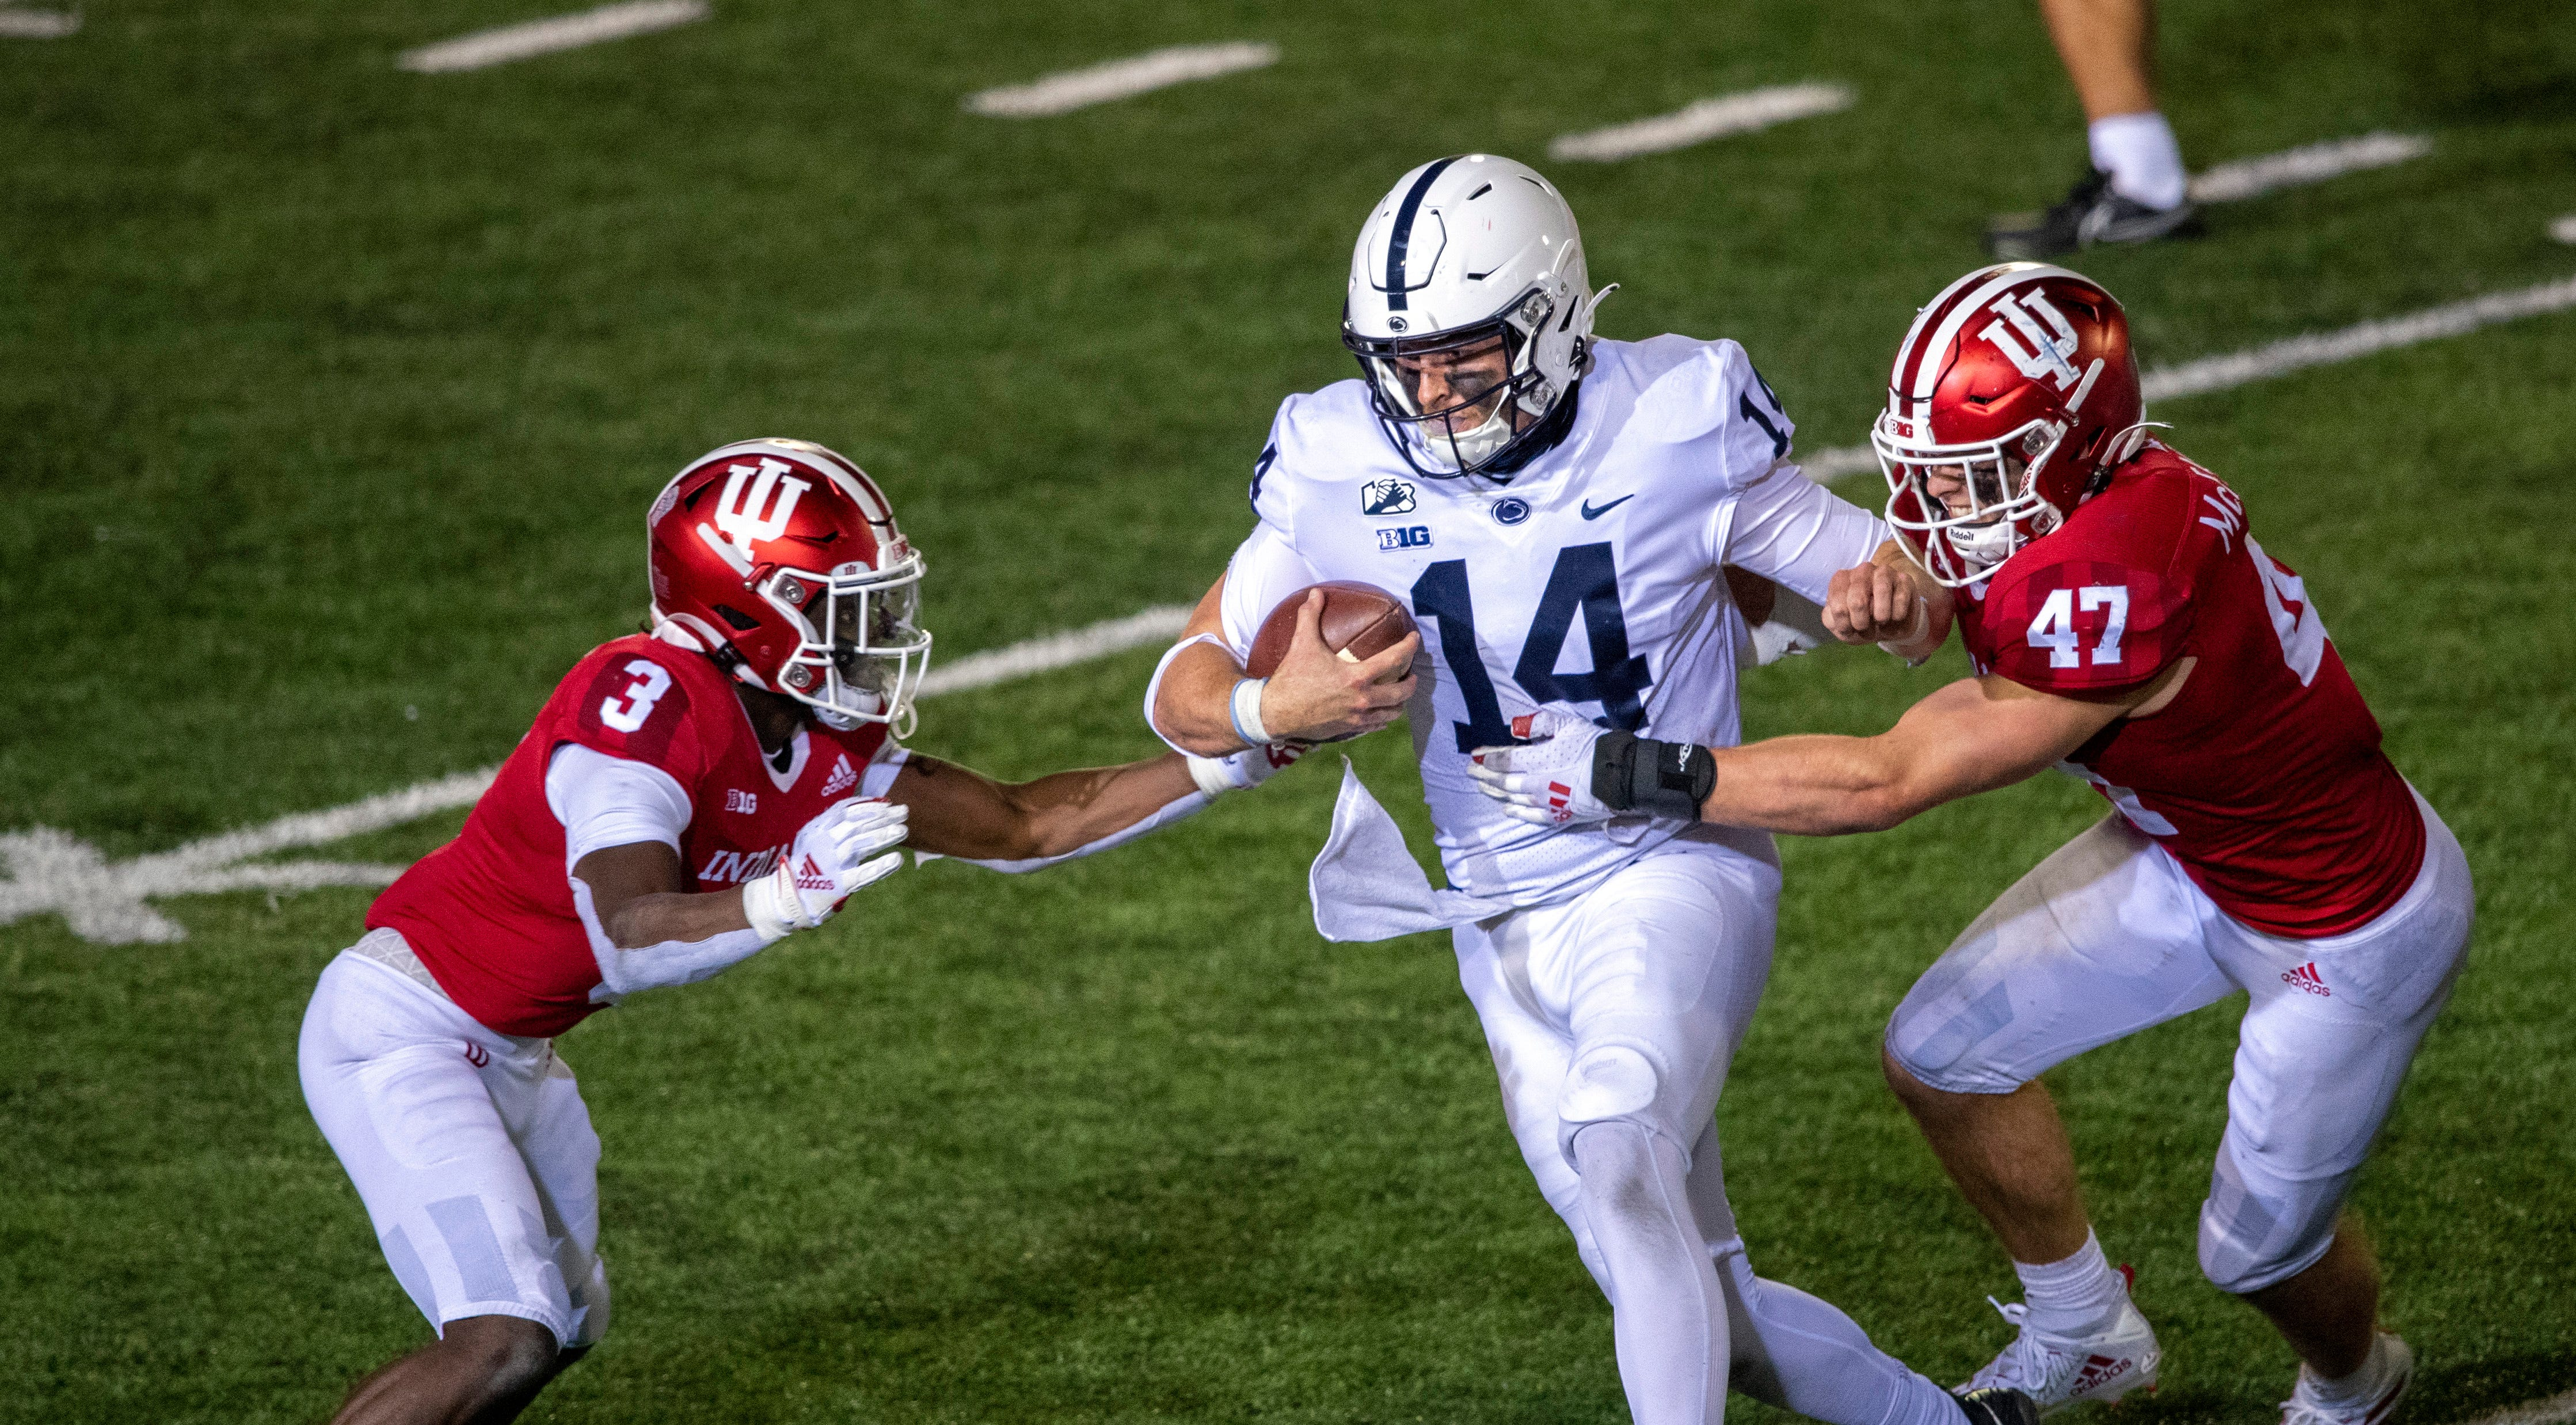 Penn State football's next step: Why the 2020 season is suddenly so questionable